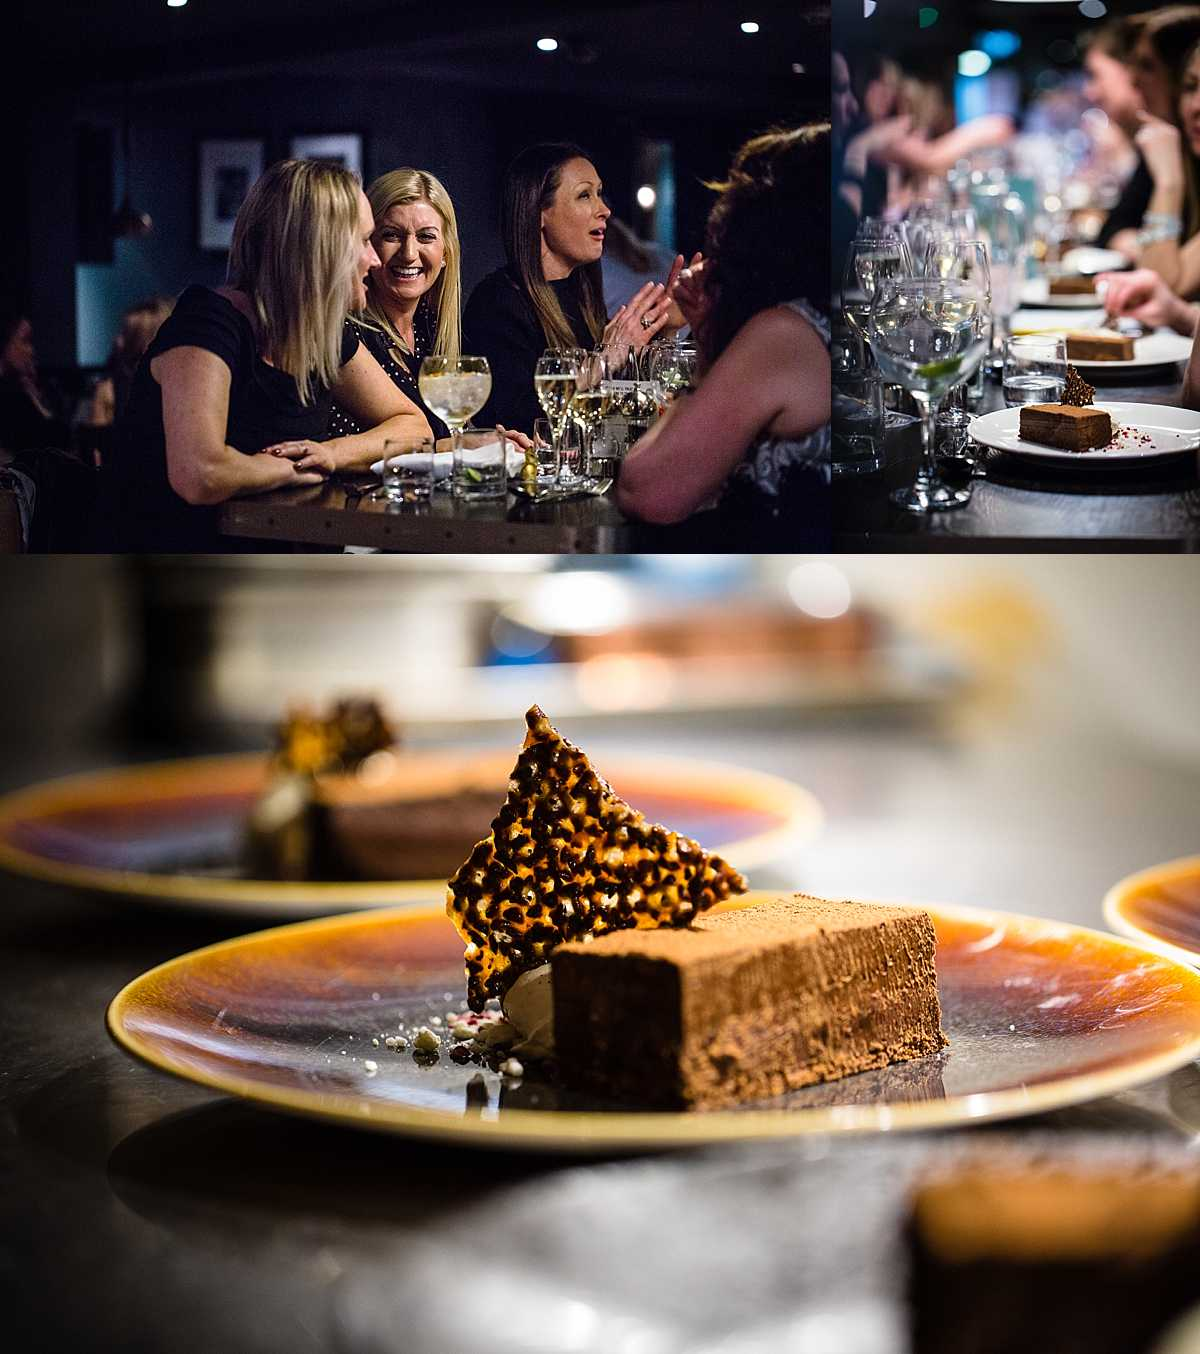 ladies eating pudding at the table in 1539 and a close up chocolate torte with chocolate honeycomb decor